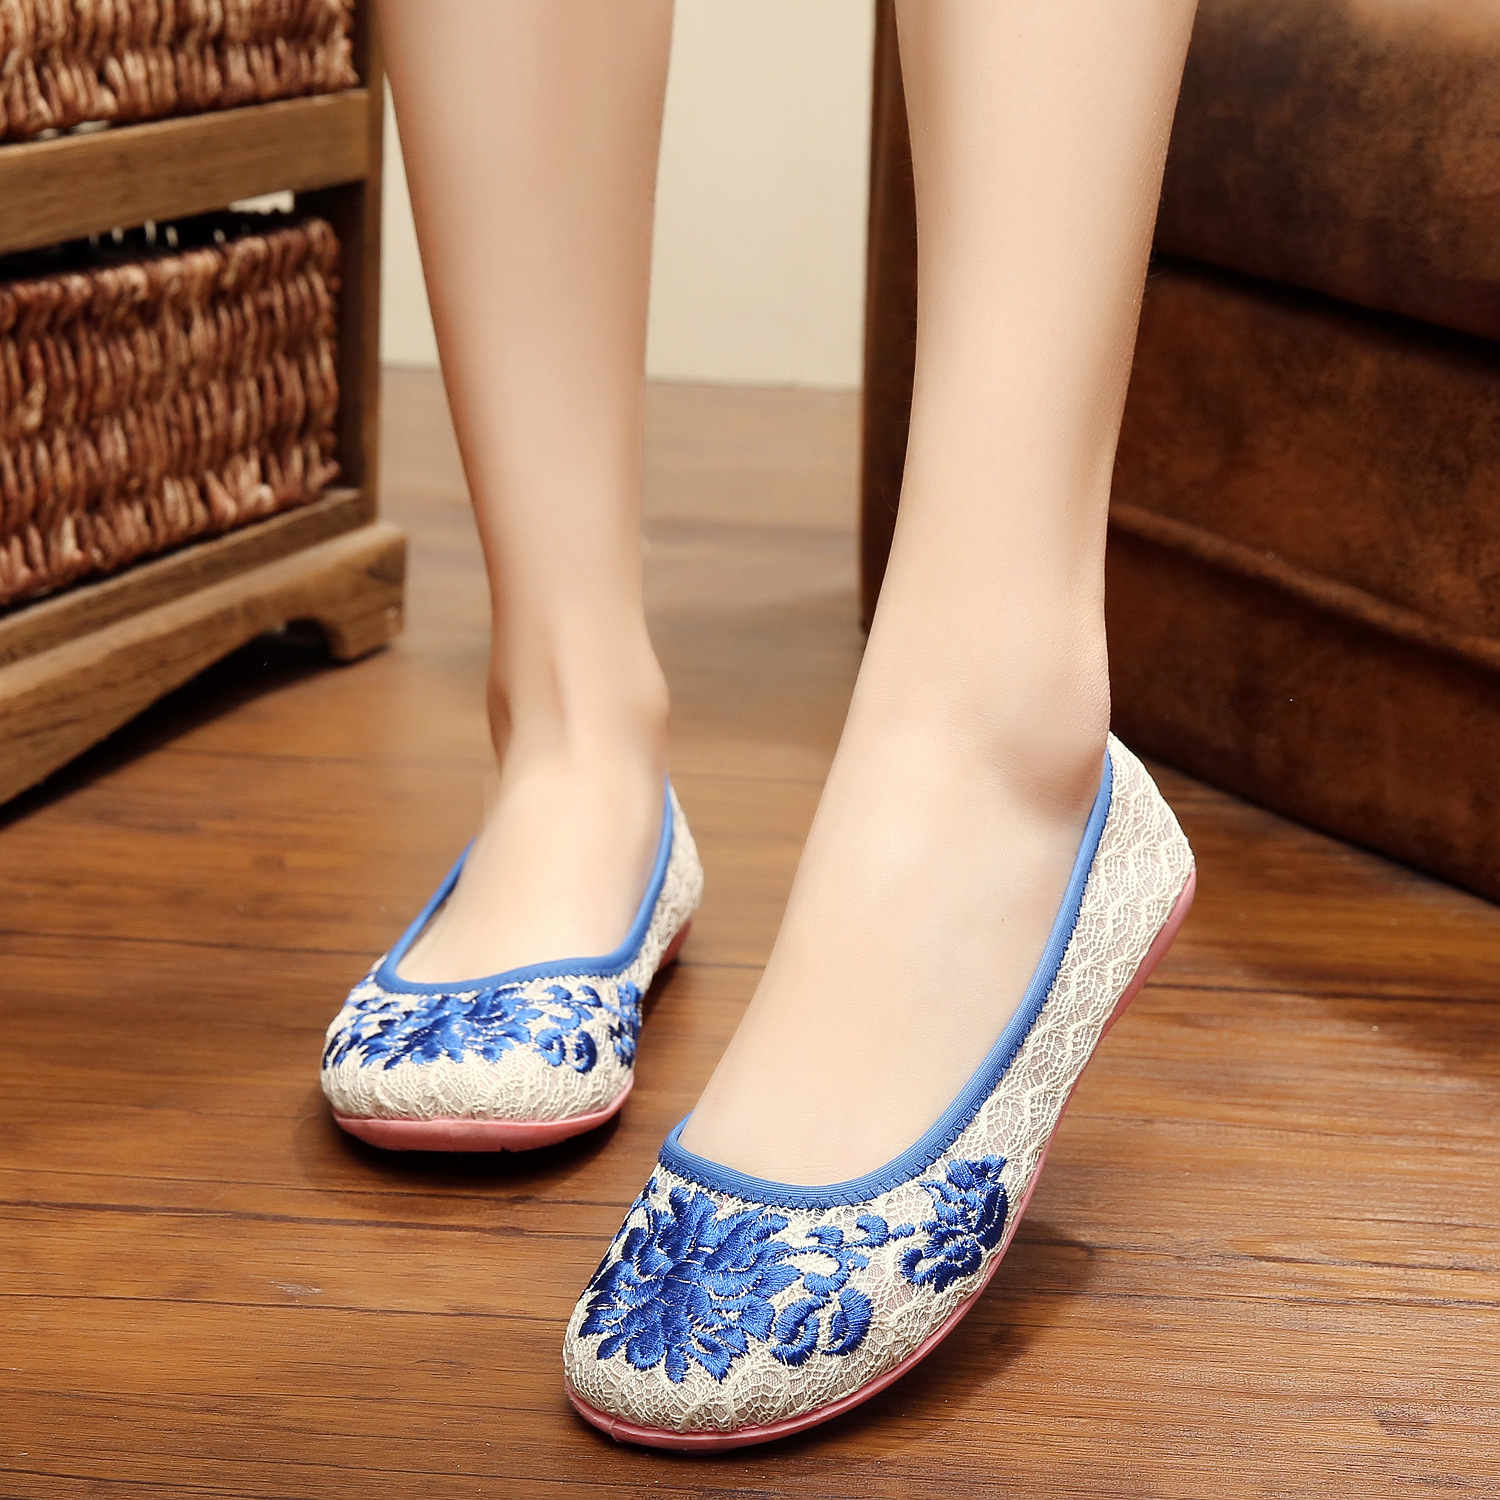 New summer design shoes women fashion floral embroidery casual simple lace woman shoes soft ladies shoes flats soft loafers<br><br>Aliexpress